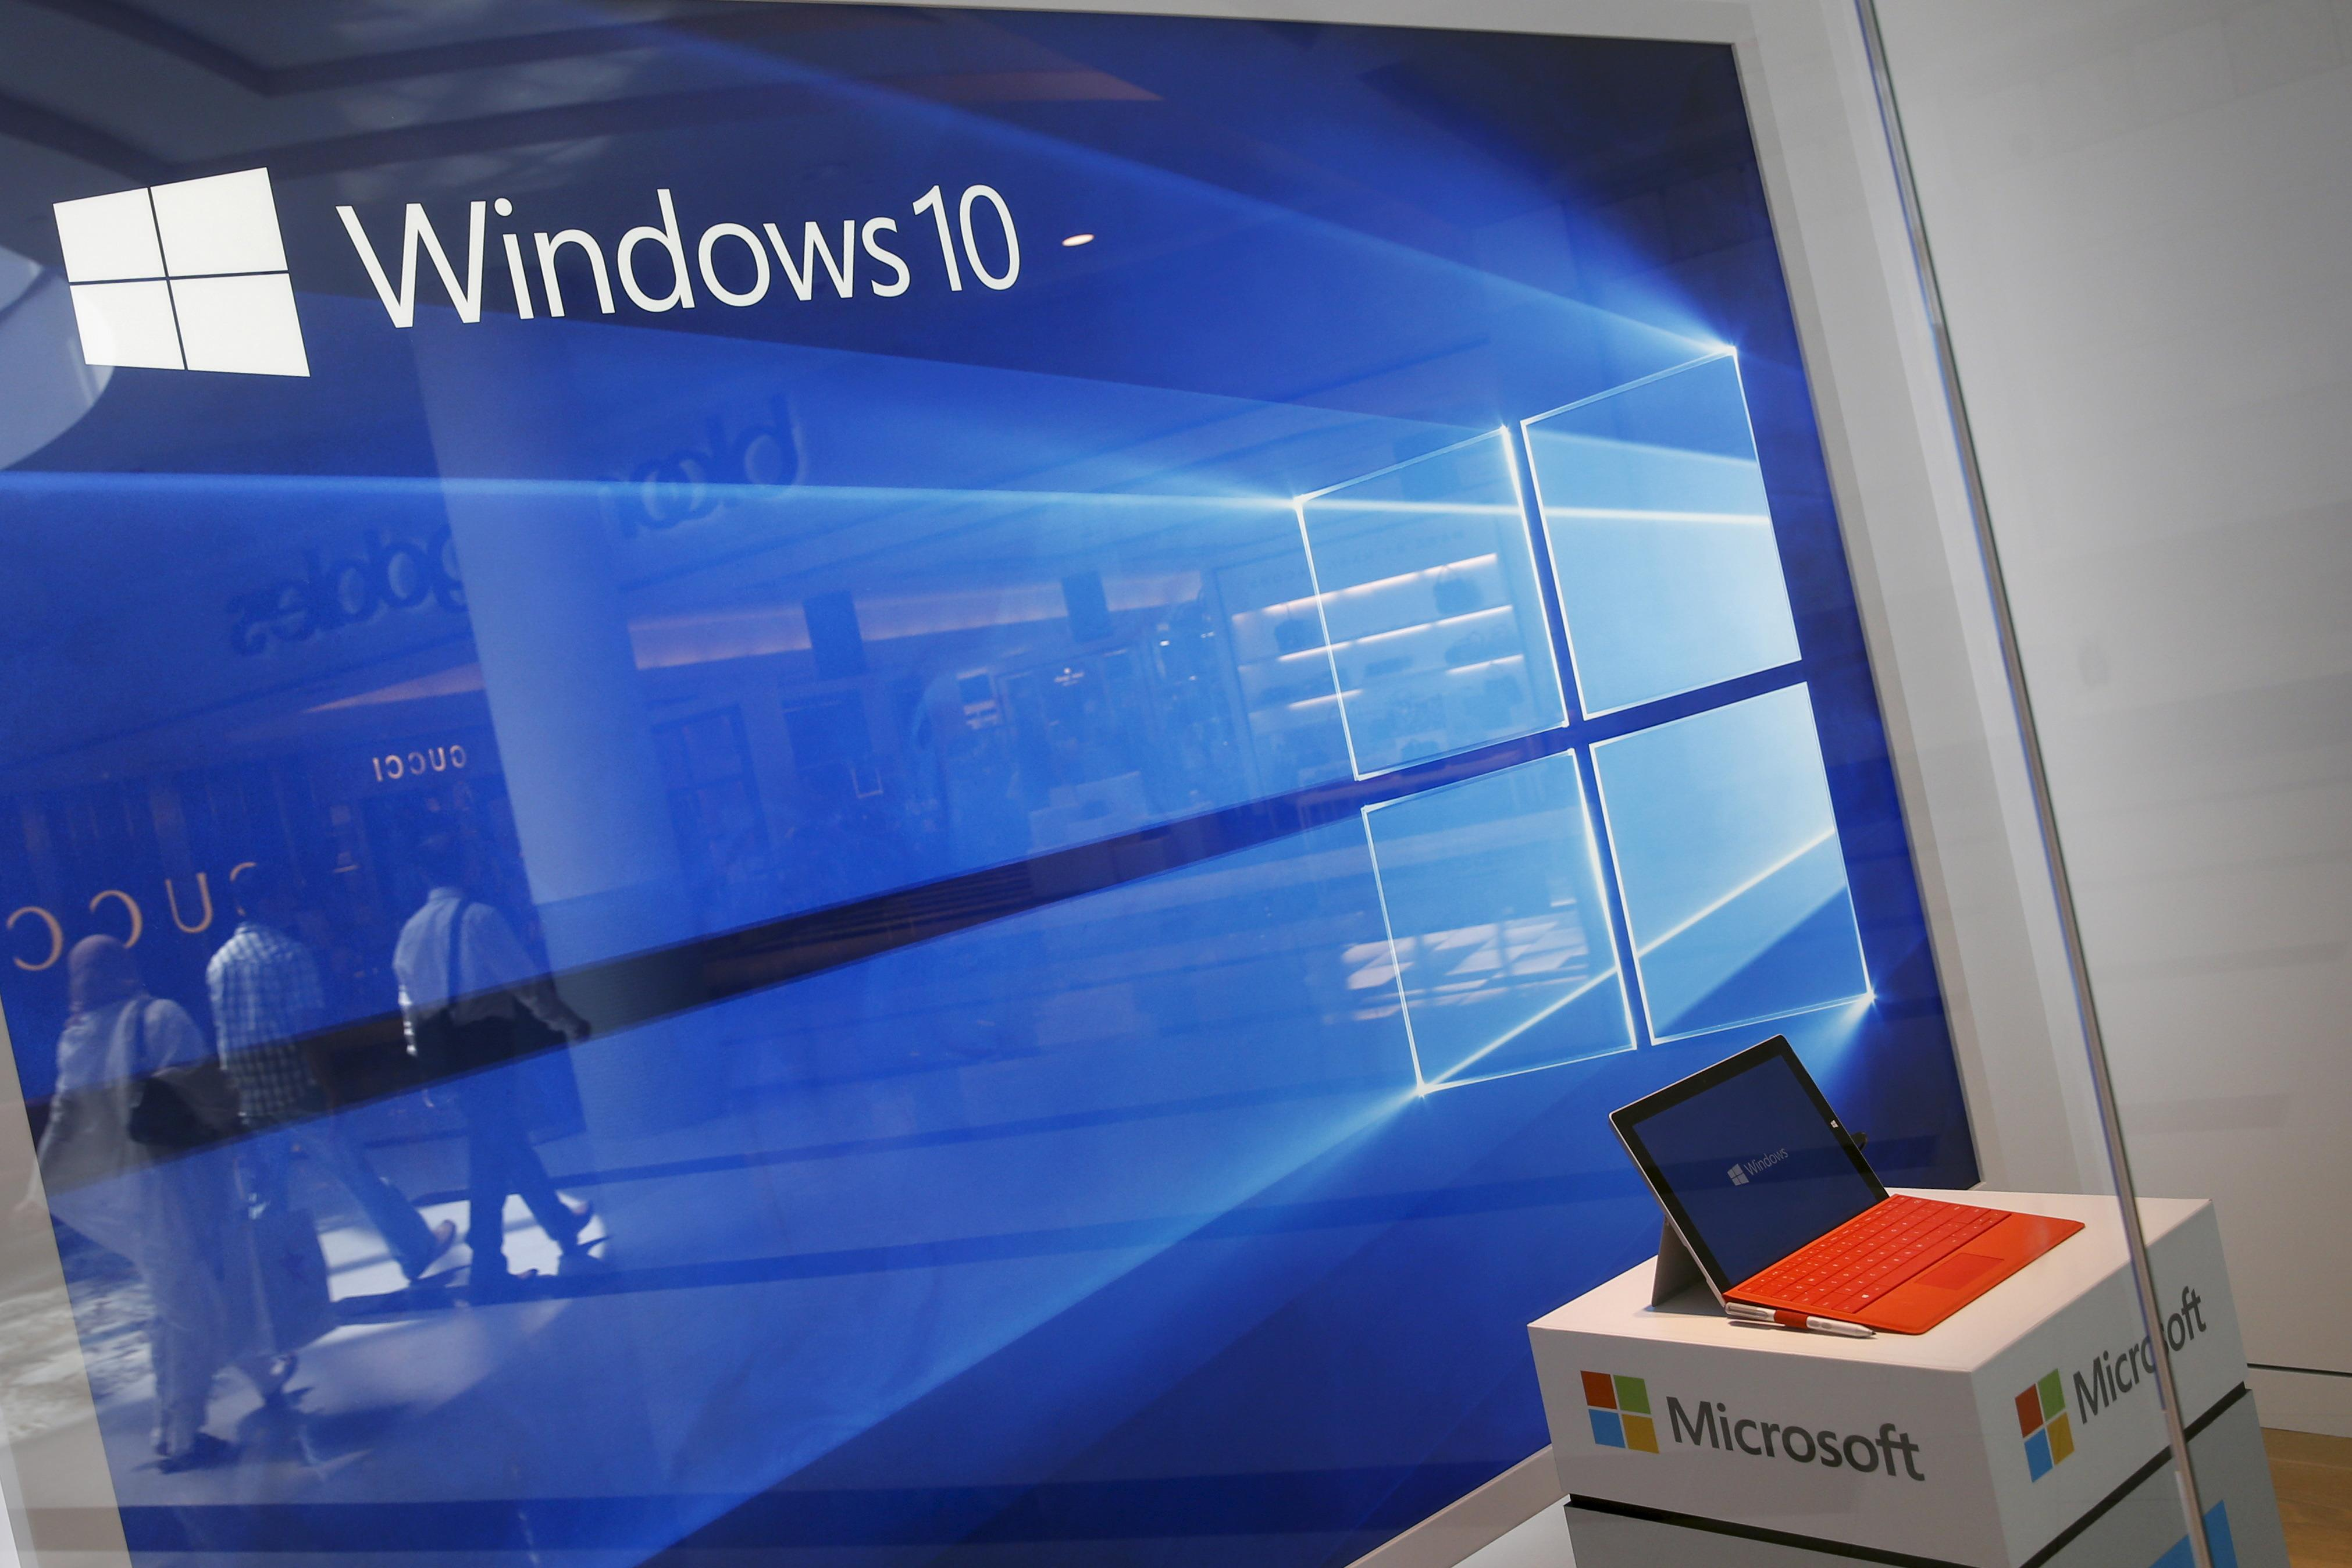 Payout for Windows 10 update